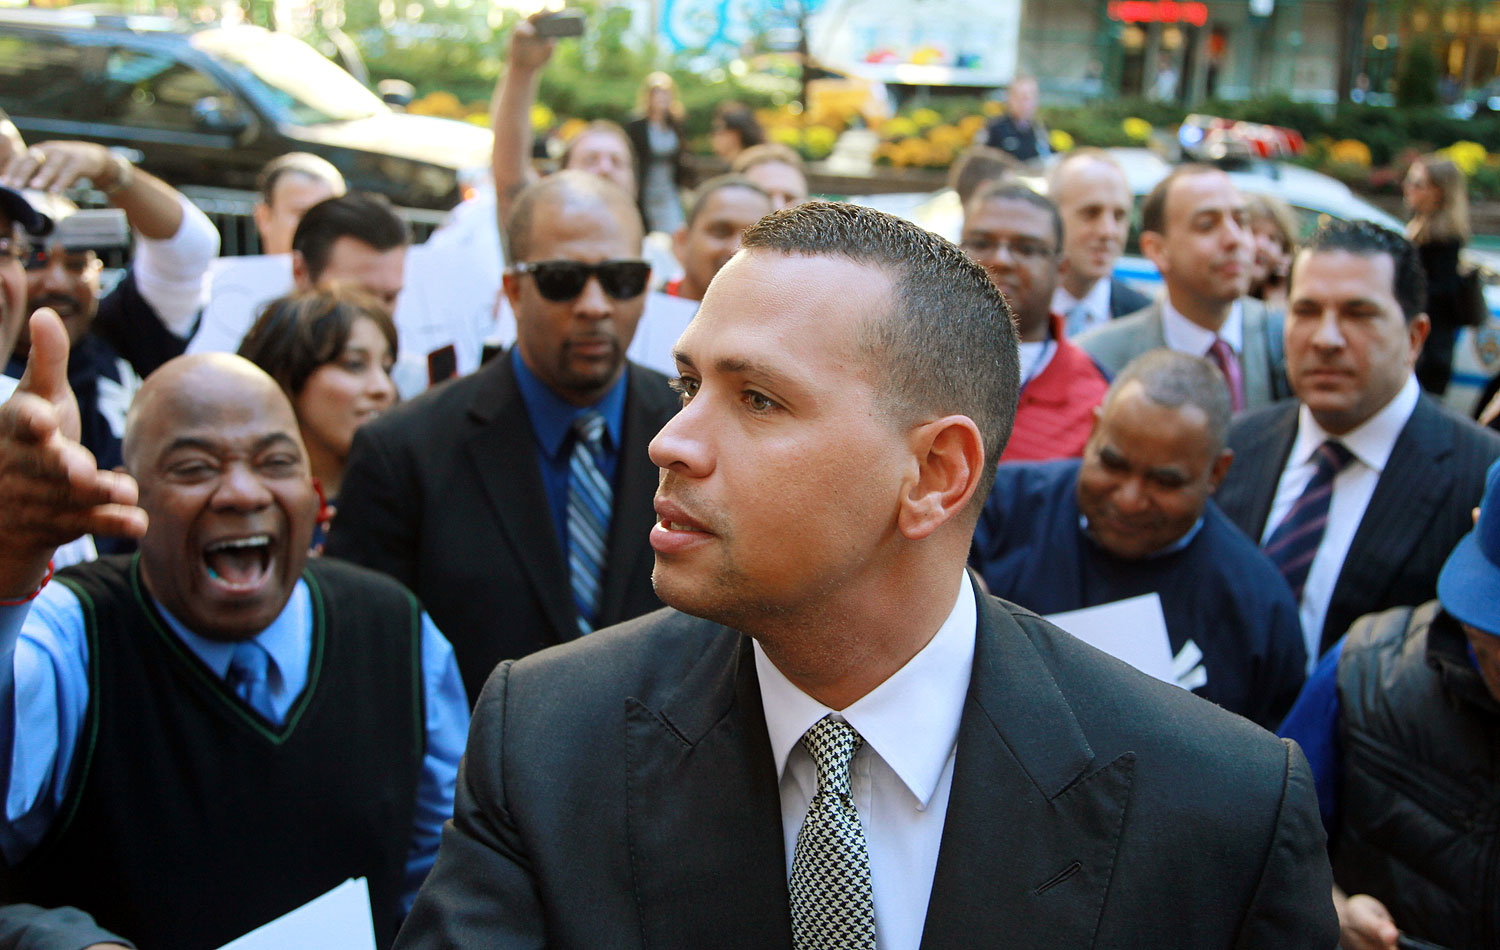 "The recipient of a record 162-game suspension (reduced by an arbitrator from the original 211) for his involvement in the Biogenesis PED scandal, A-Rod sued MLB only to withdraw the suit after complaining that, ""The number of games sadly comes as no surprise, as the deck has been stacked against me from day one."" Alas, DEA records and court filings showed that he'd confessed to using PEDs and paid his cousin/co-conspirator Yuri Sucart nearly $1 million to clam up."